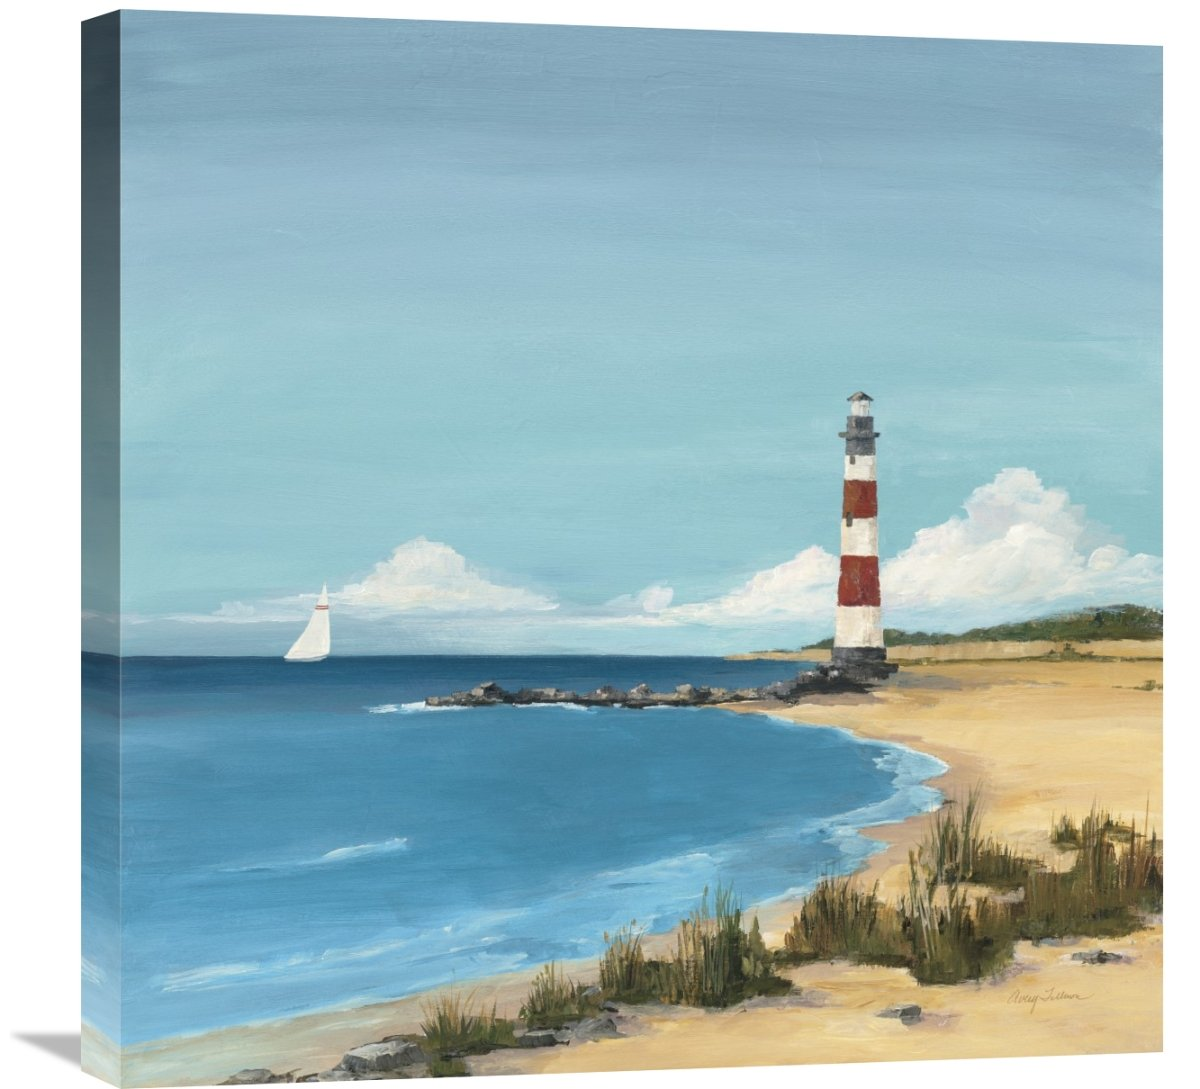 Global GalleryAvery Tillmon Sandy Point Giclee Stretched Canvas Artwork 24 x 24